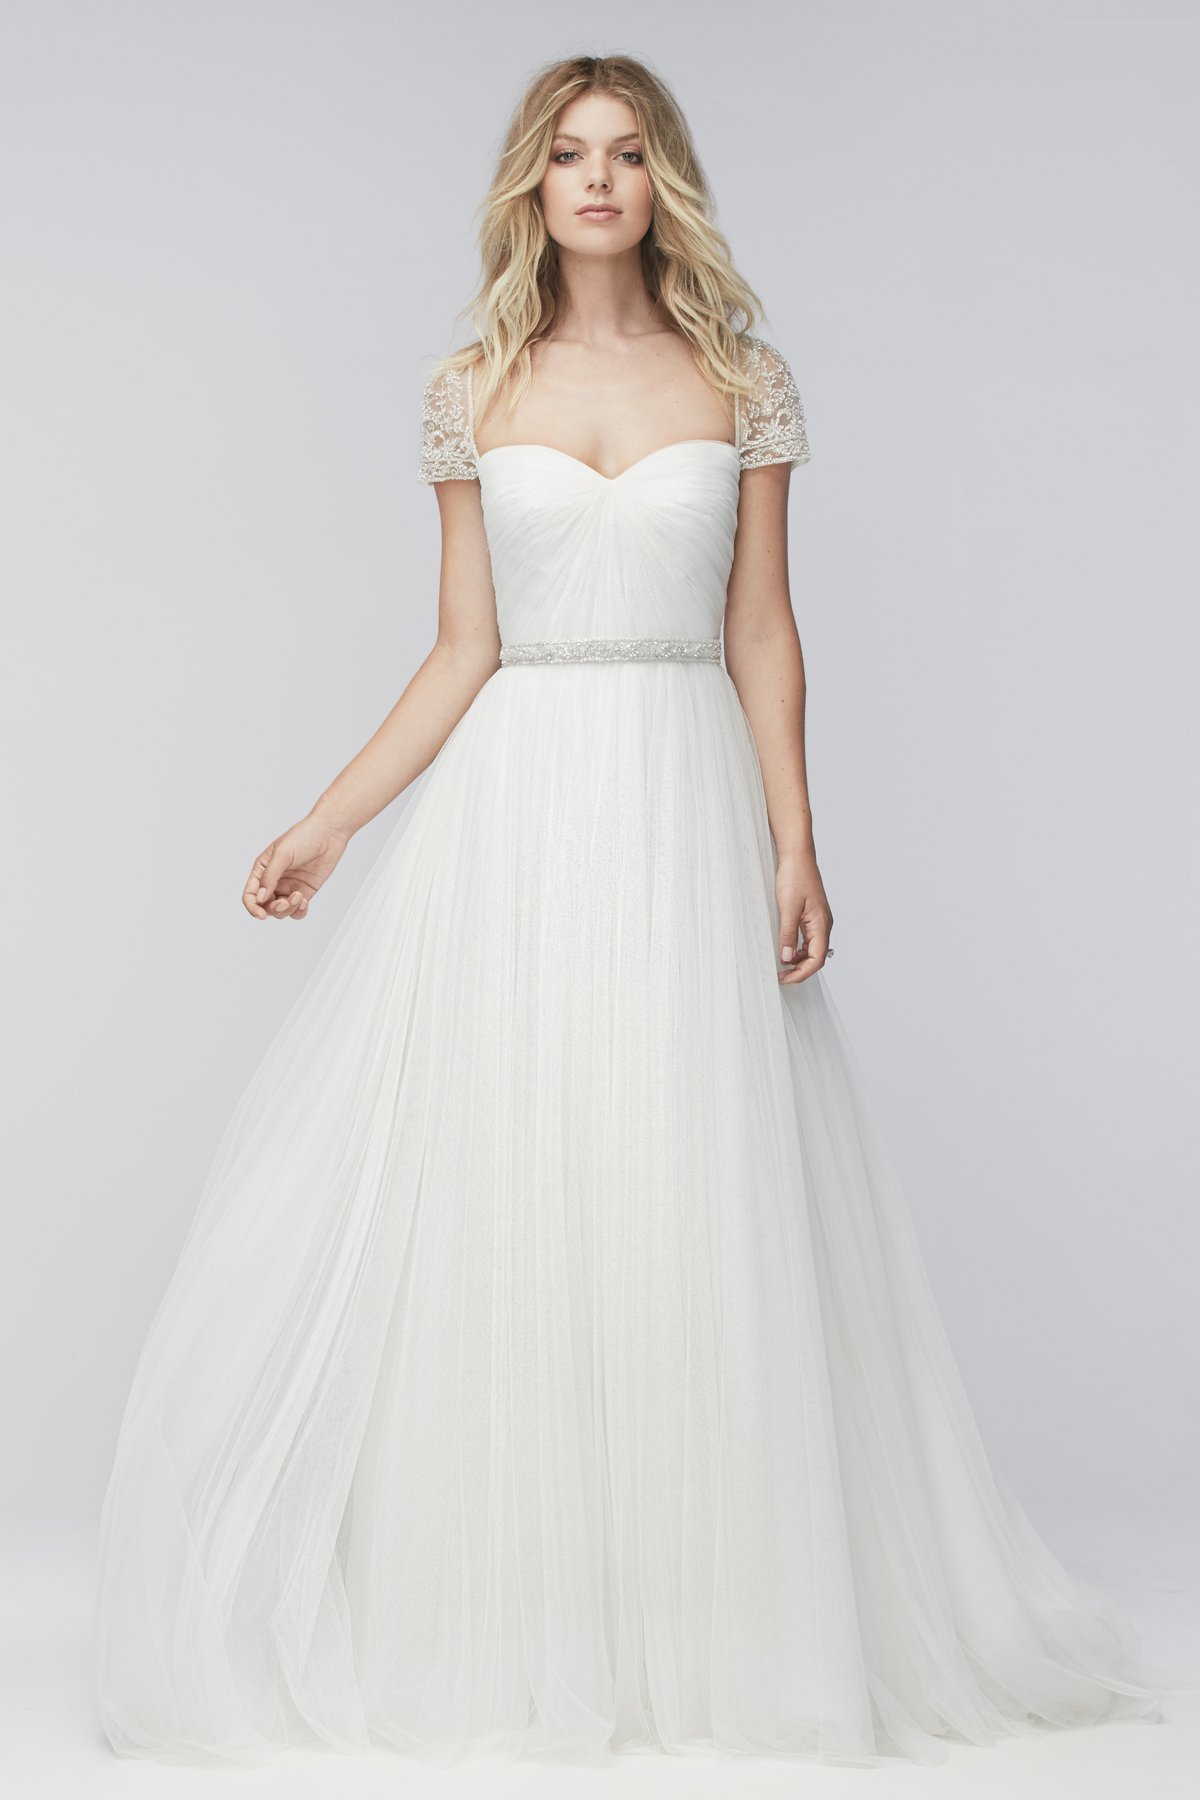 Drawn wedding dress most expensive For To Wedding Wedding Tips